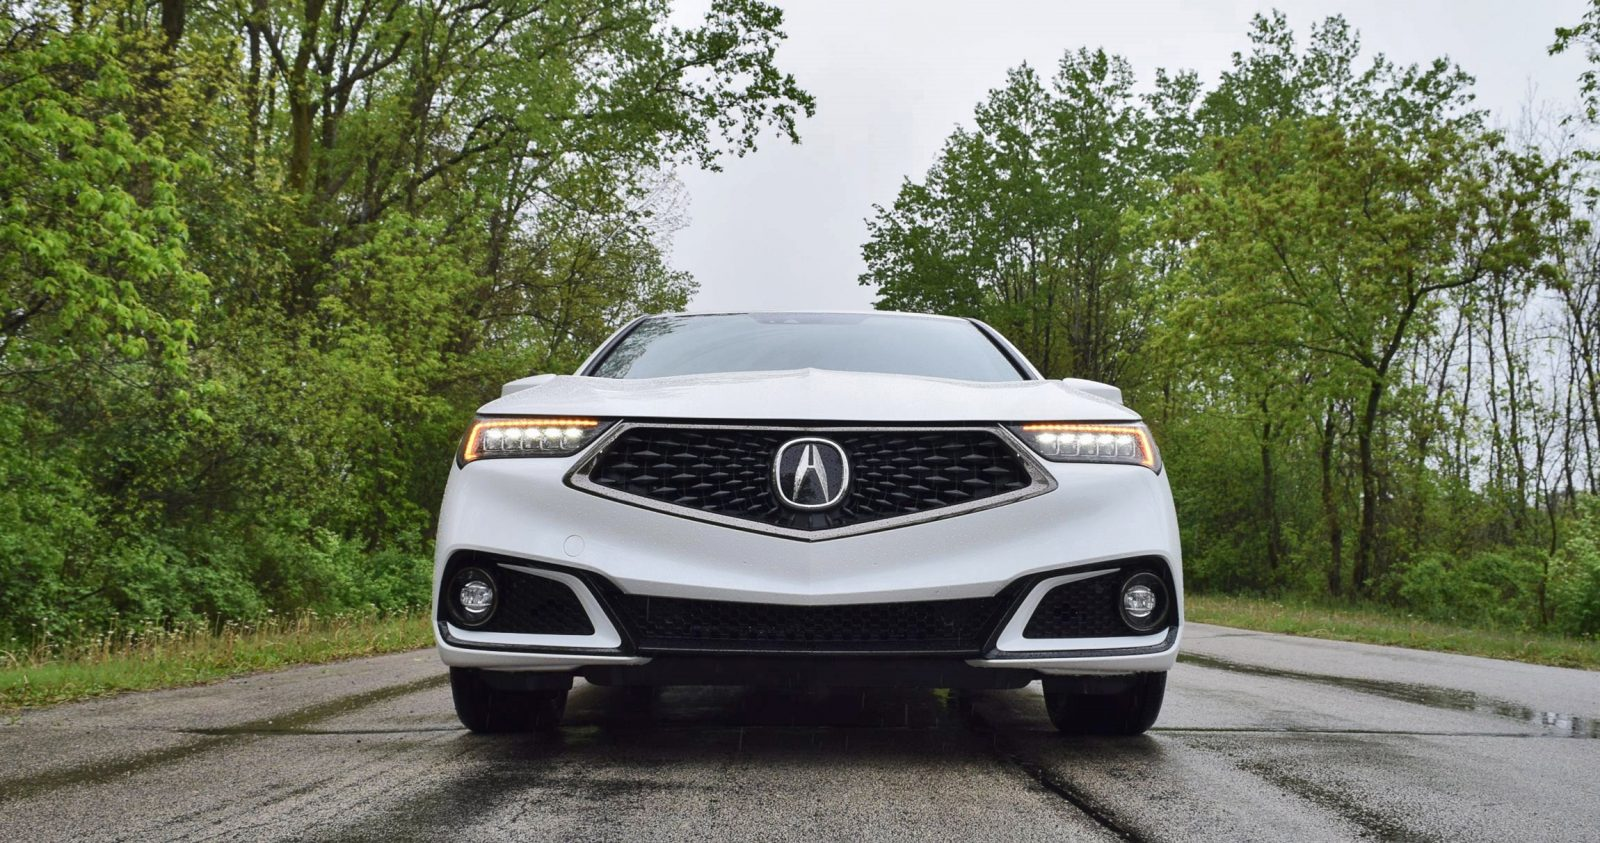 2018 Acura TLX A-Spec 1